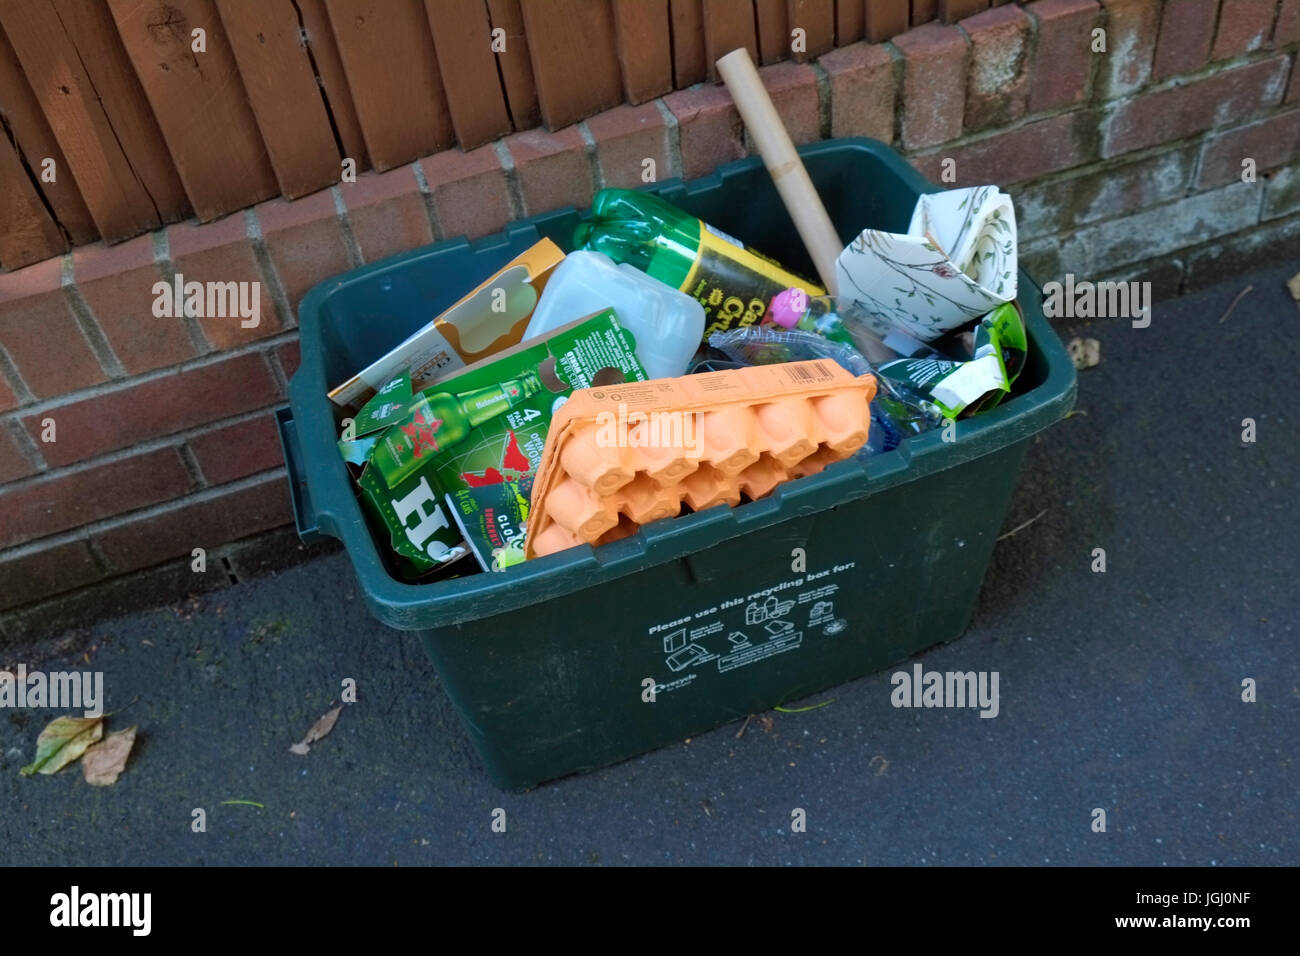 A green recycling bin outside a house in Bristol, UK - Stock Image